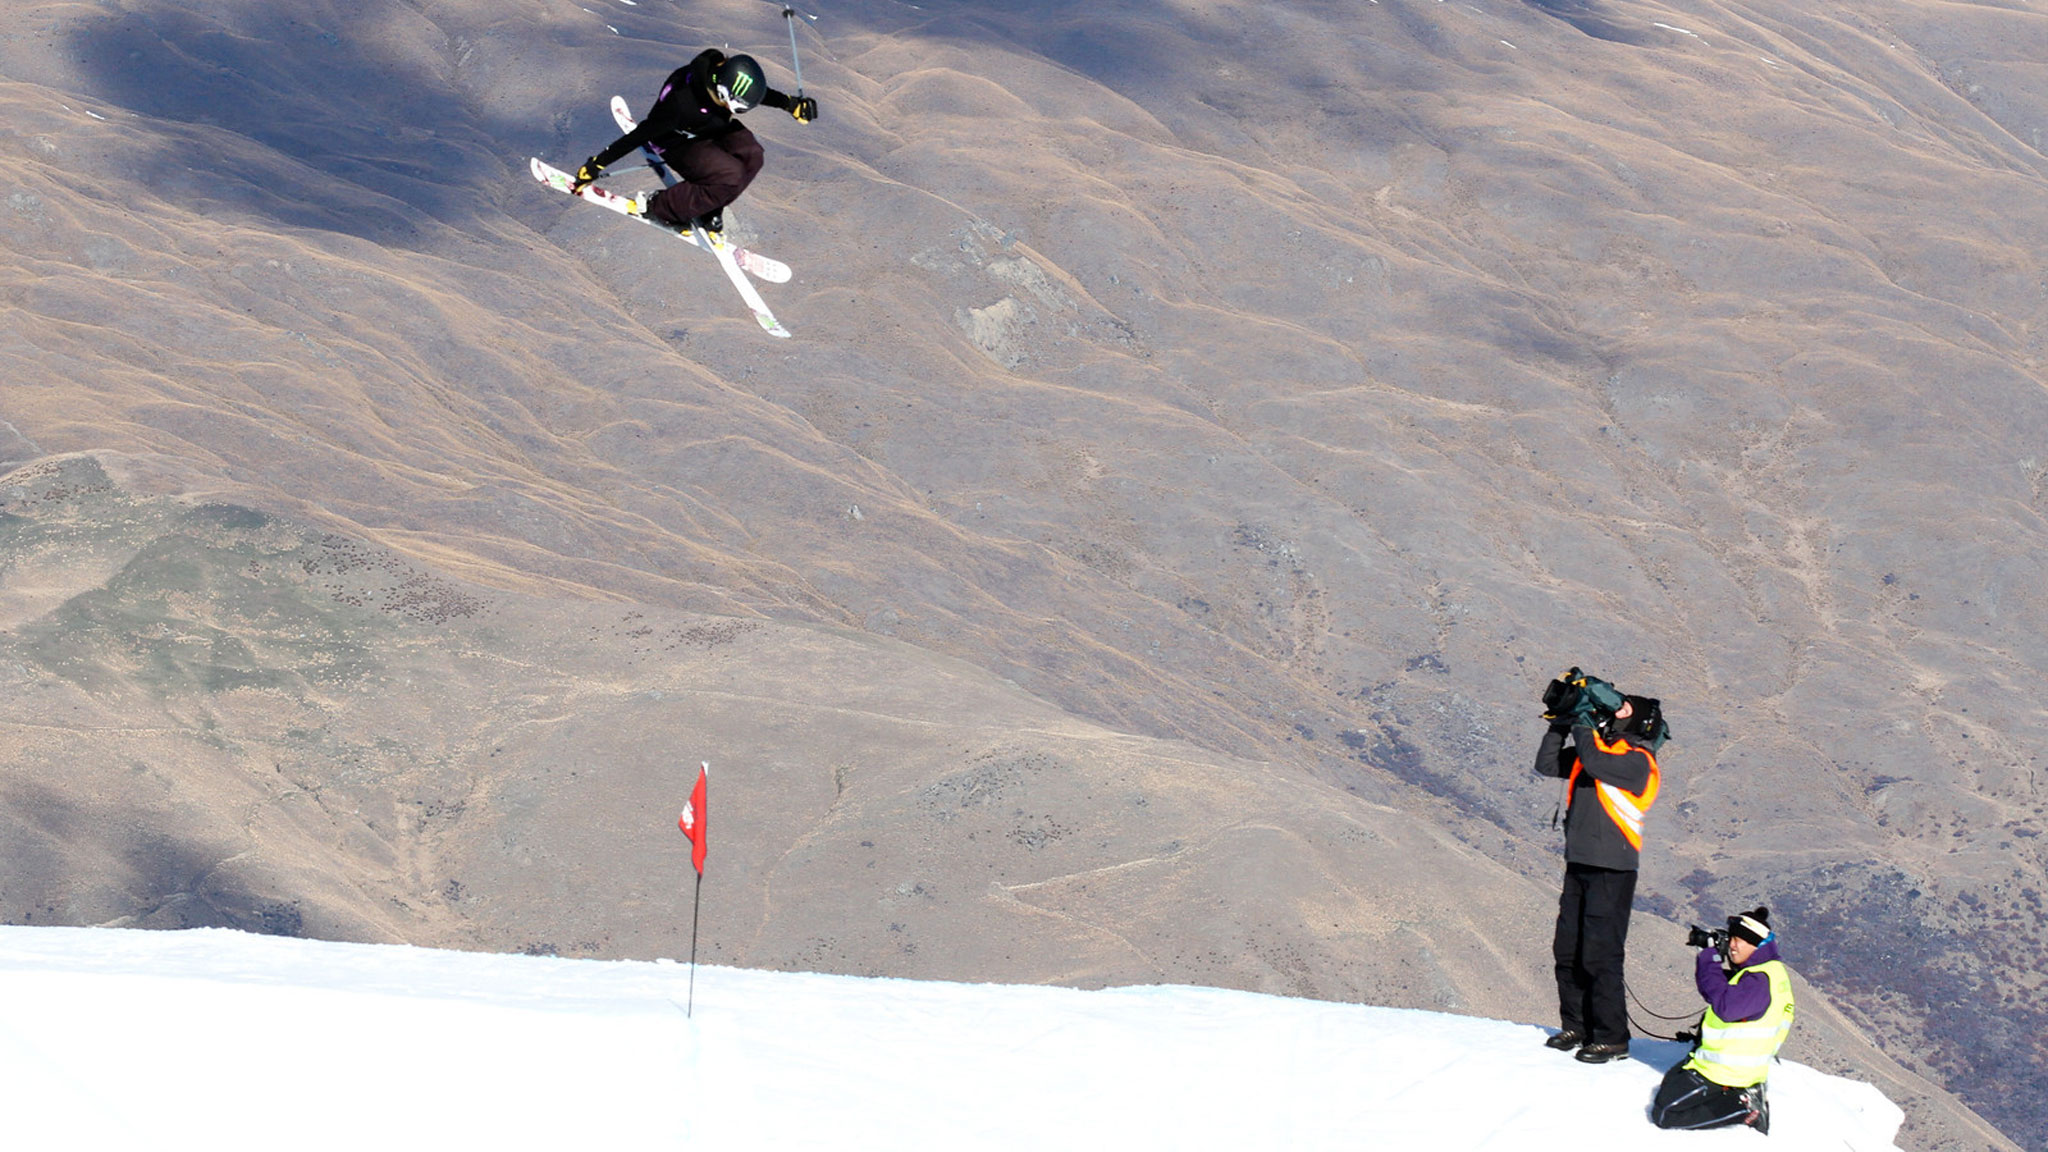 Maggie Voisin competing recently in the World Cup Slopestyle contest in New Zealand.